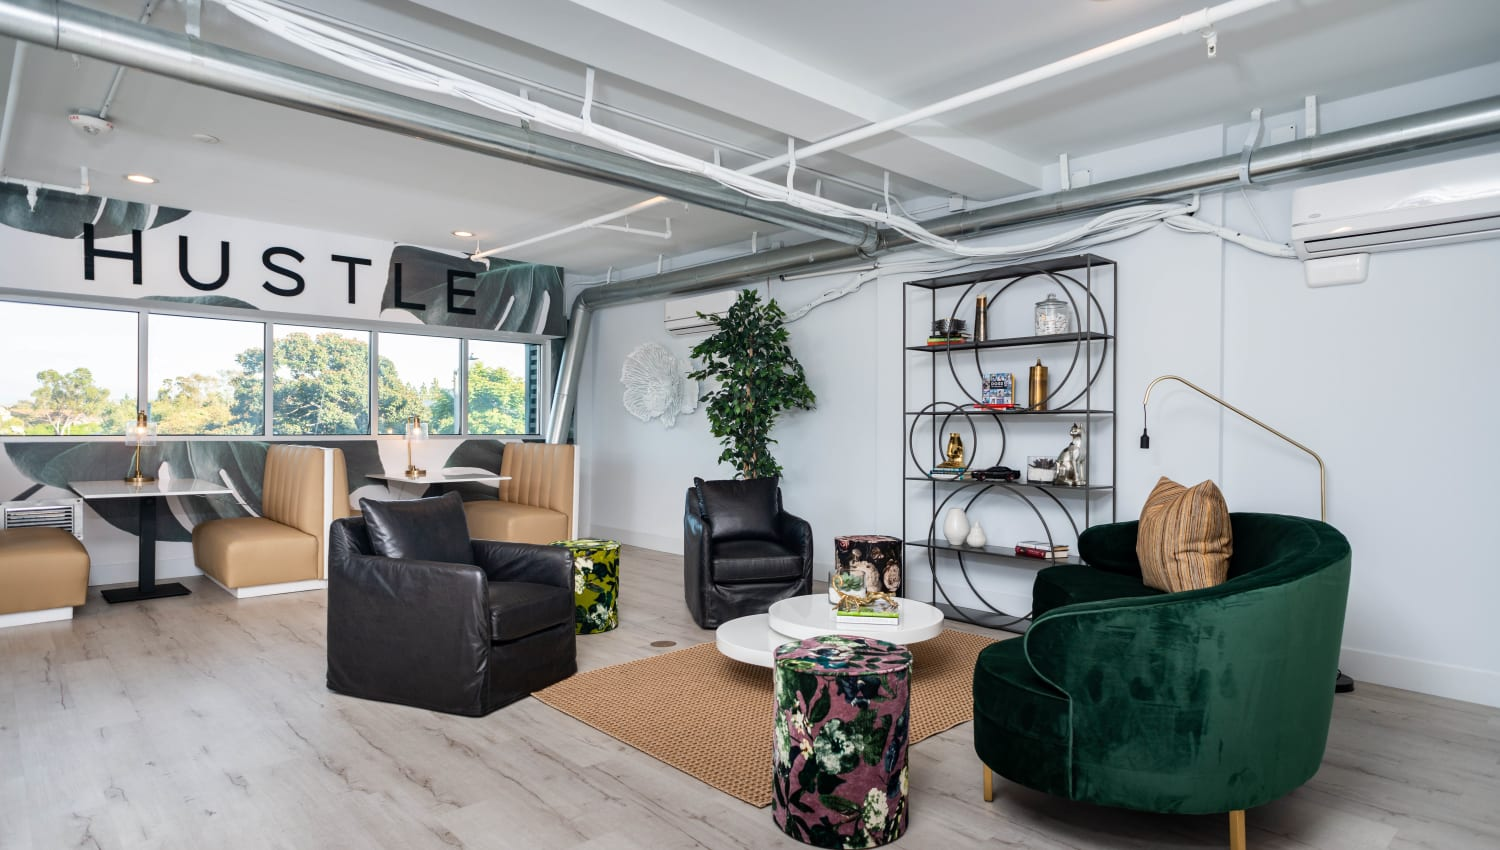 Resident lounge area at Fusion Apartments in Irvine, California